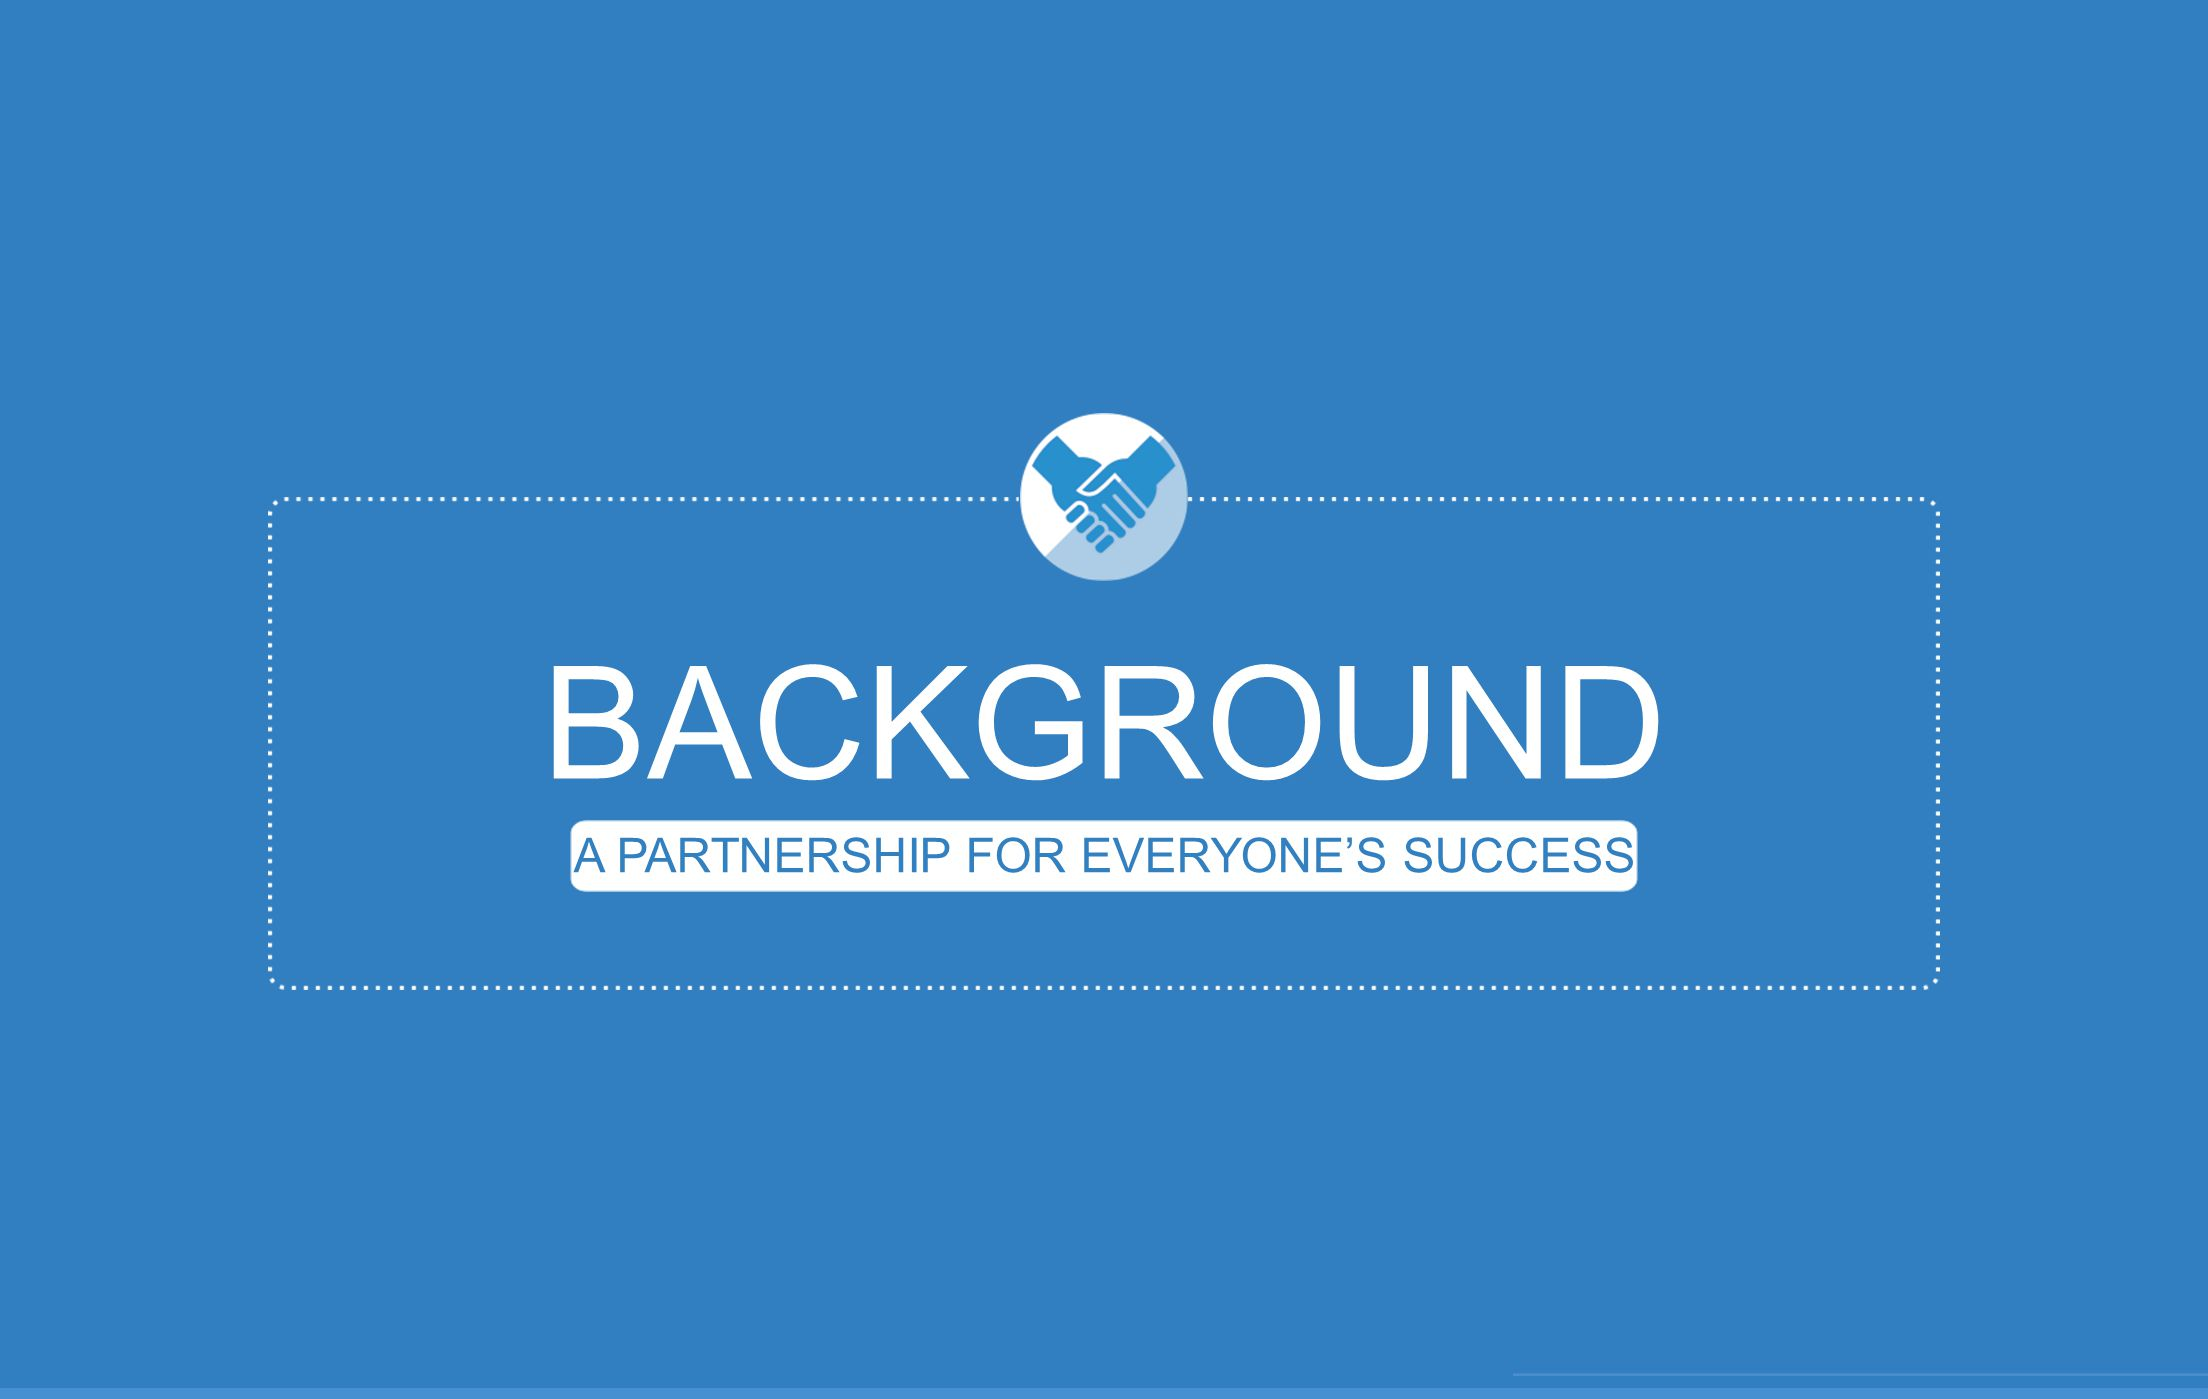 BACKGROUND A PARTNERSHIP FOR EVERYONE'S SUCCESS